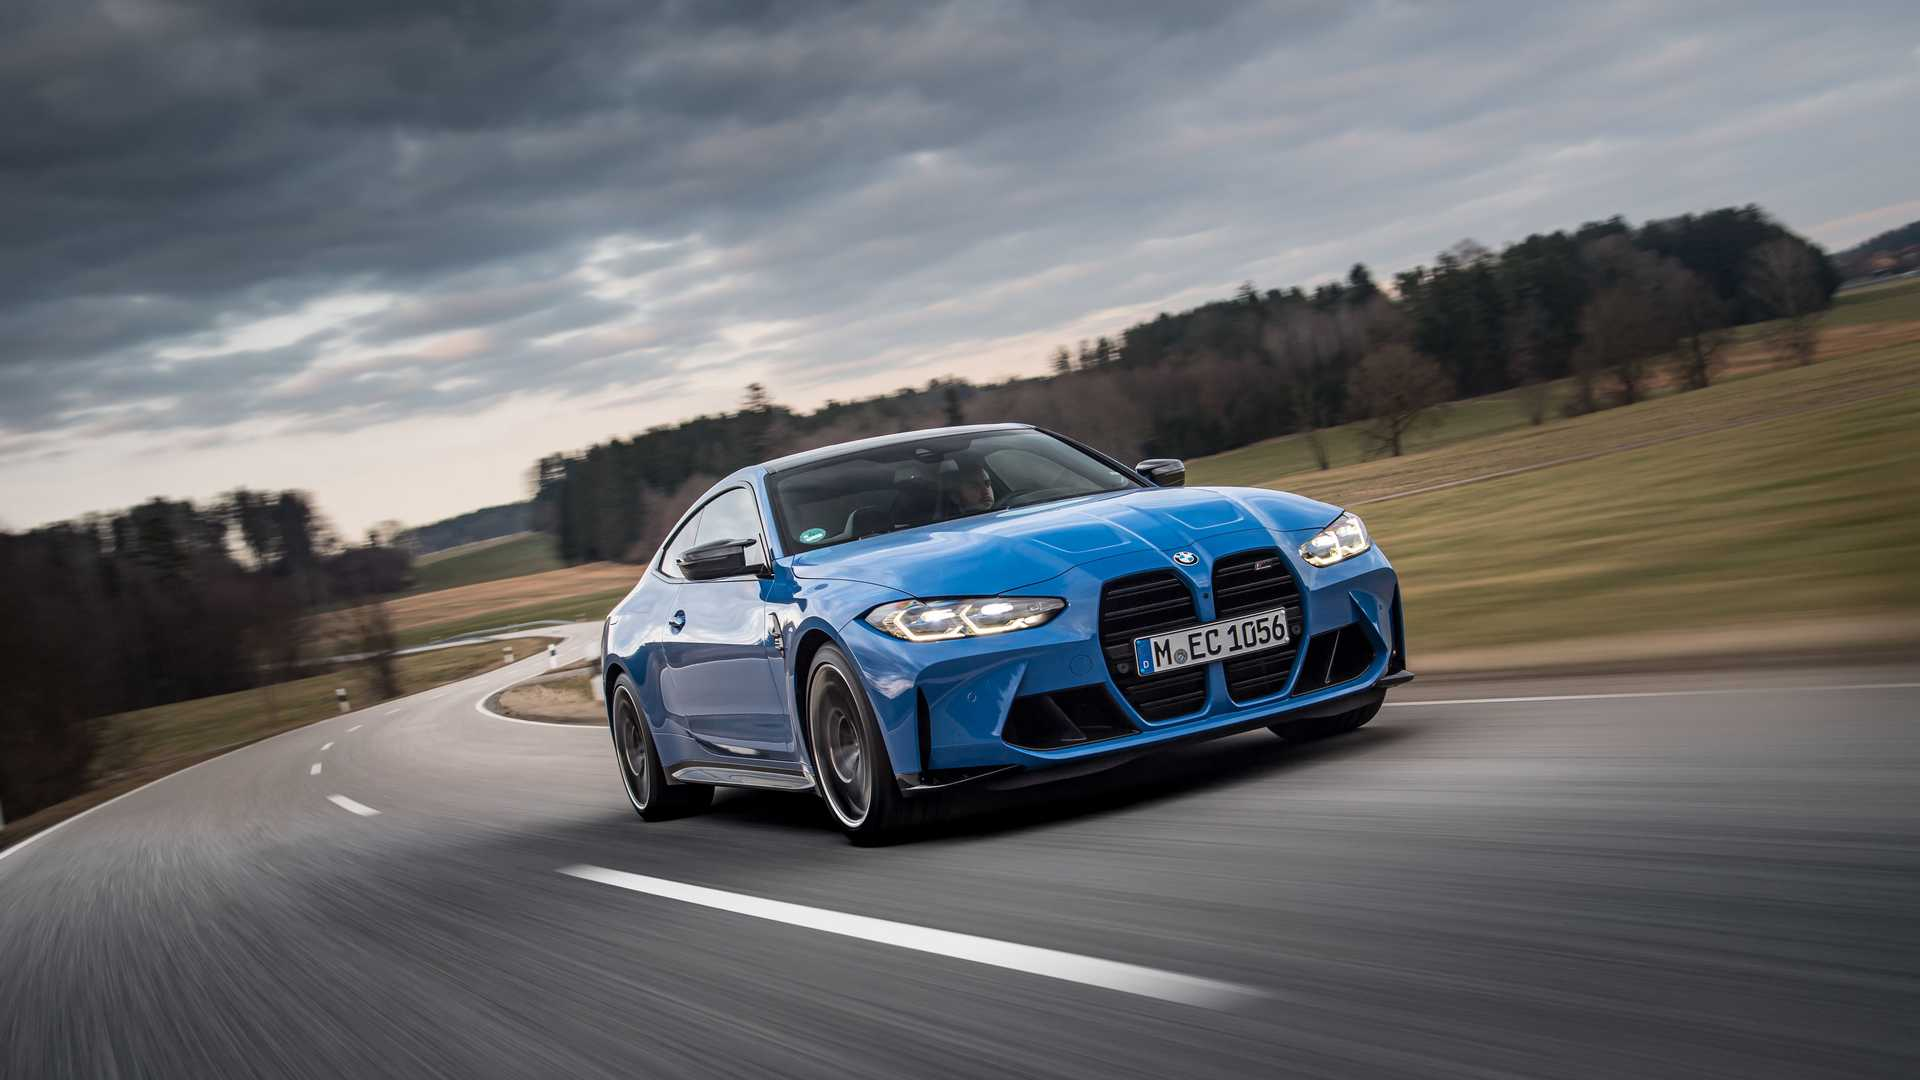 BMW-M3-and-M4-Competition-xDrive-9